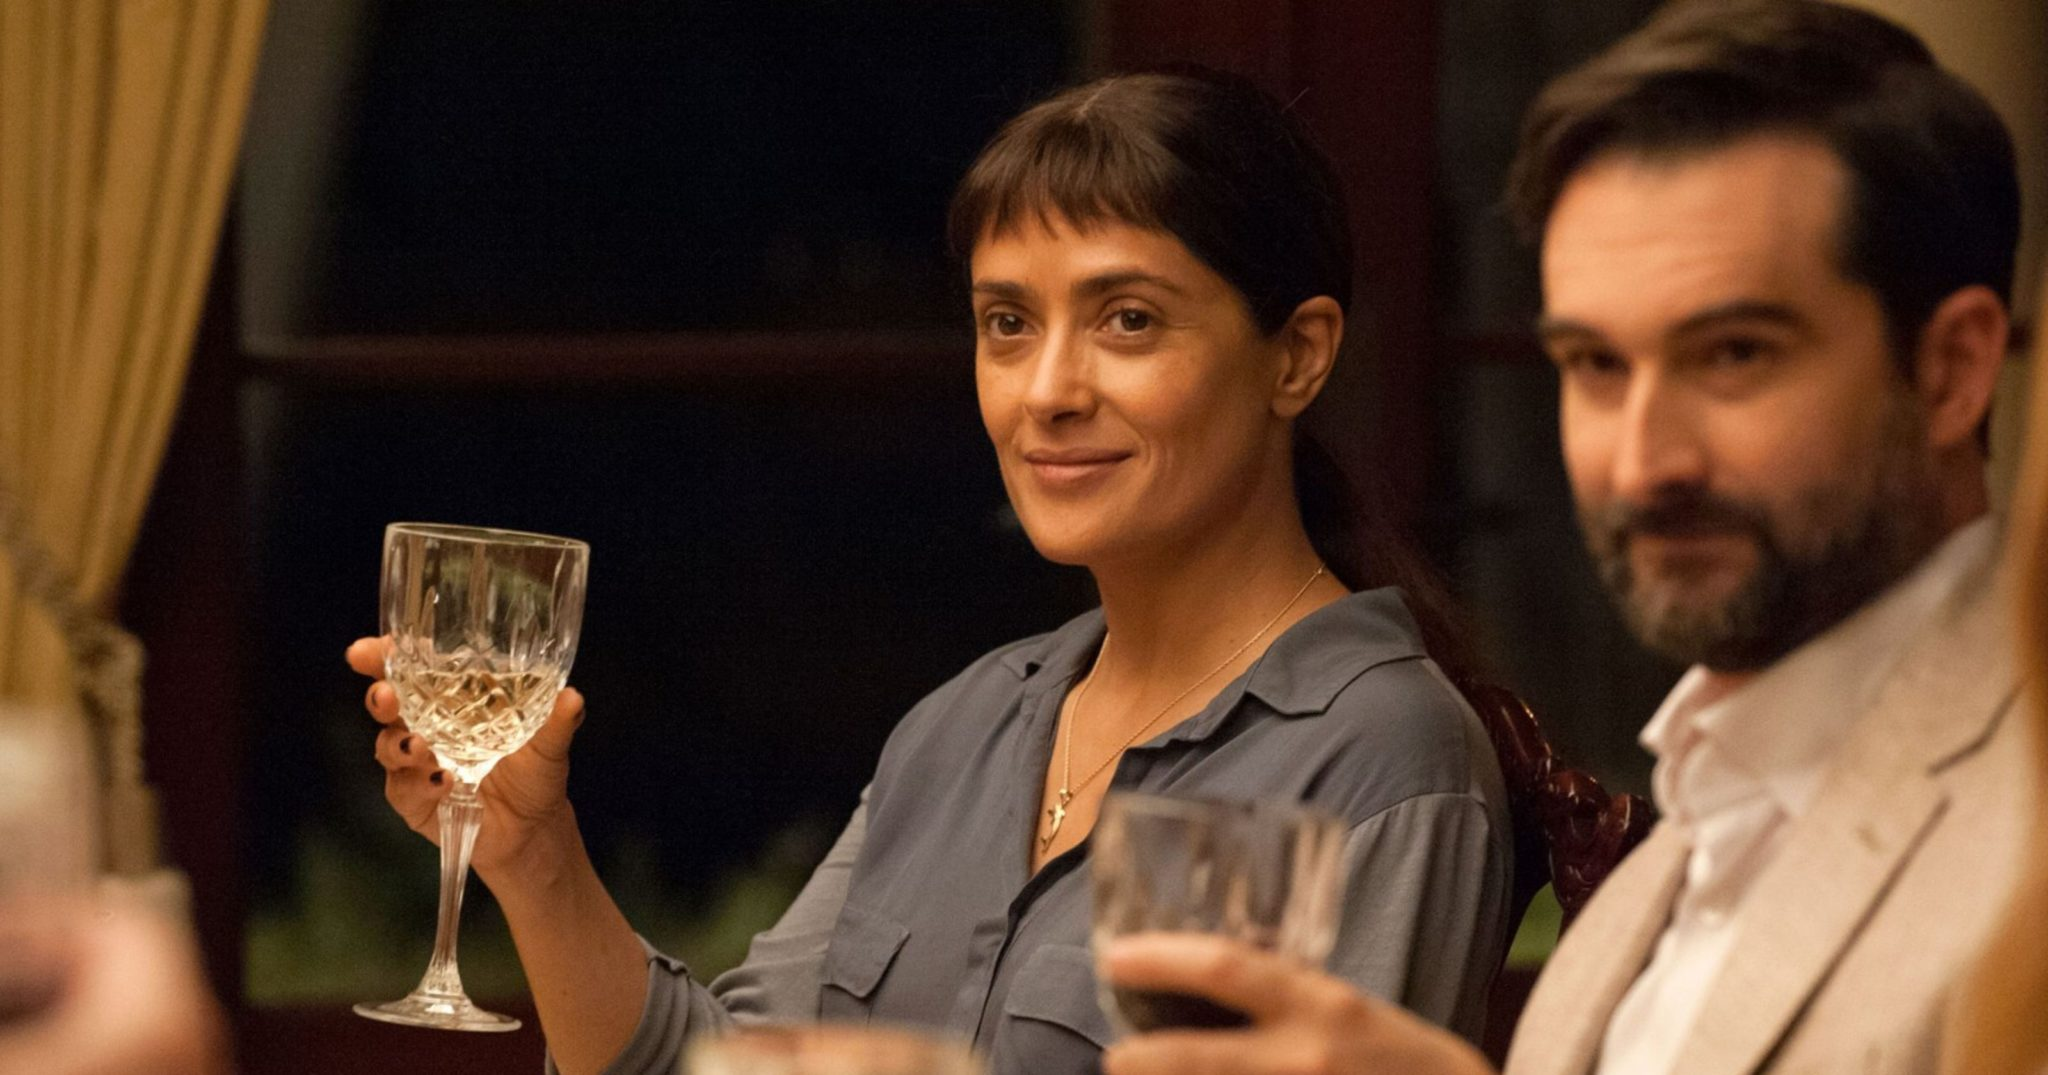 'Beatriz at Dinner' is a small film that packs an earth-shattering punch